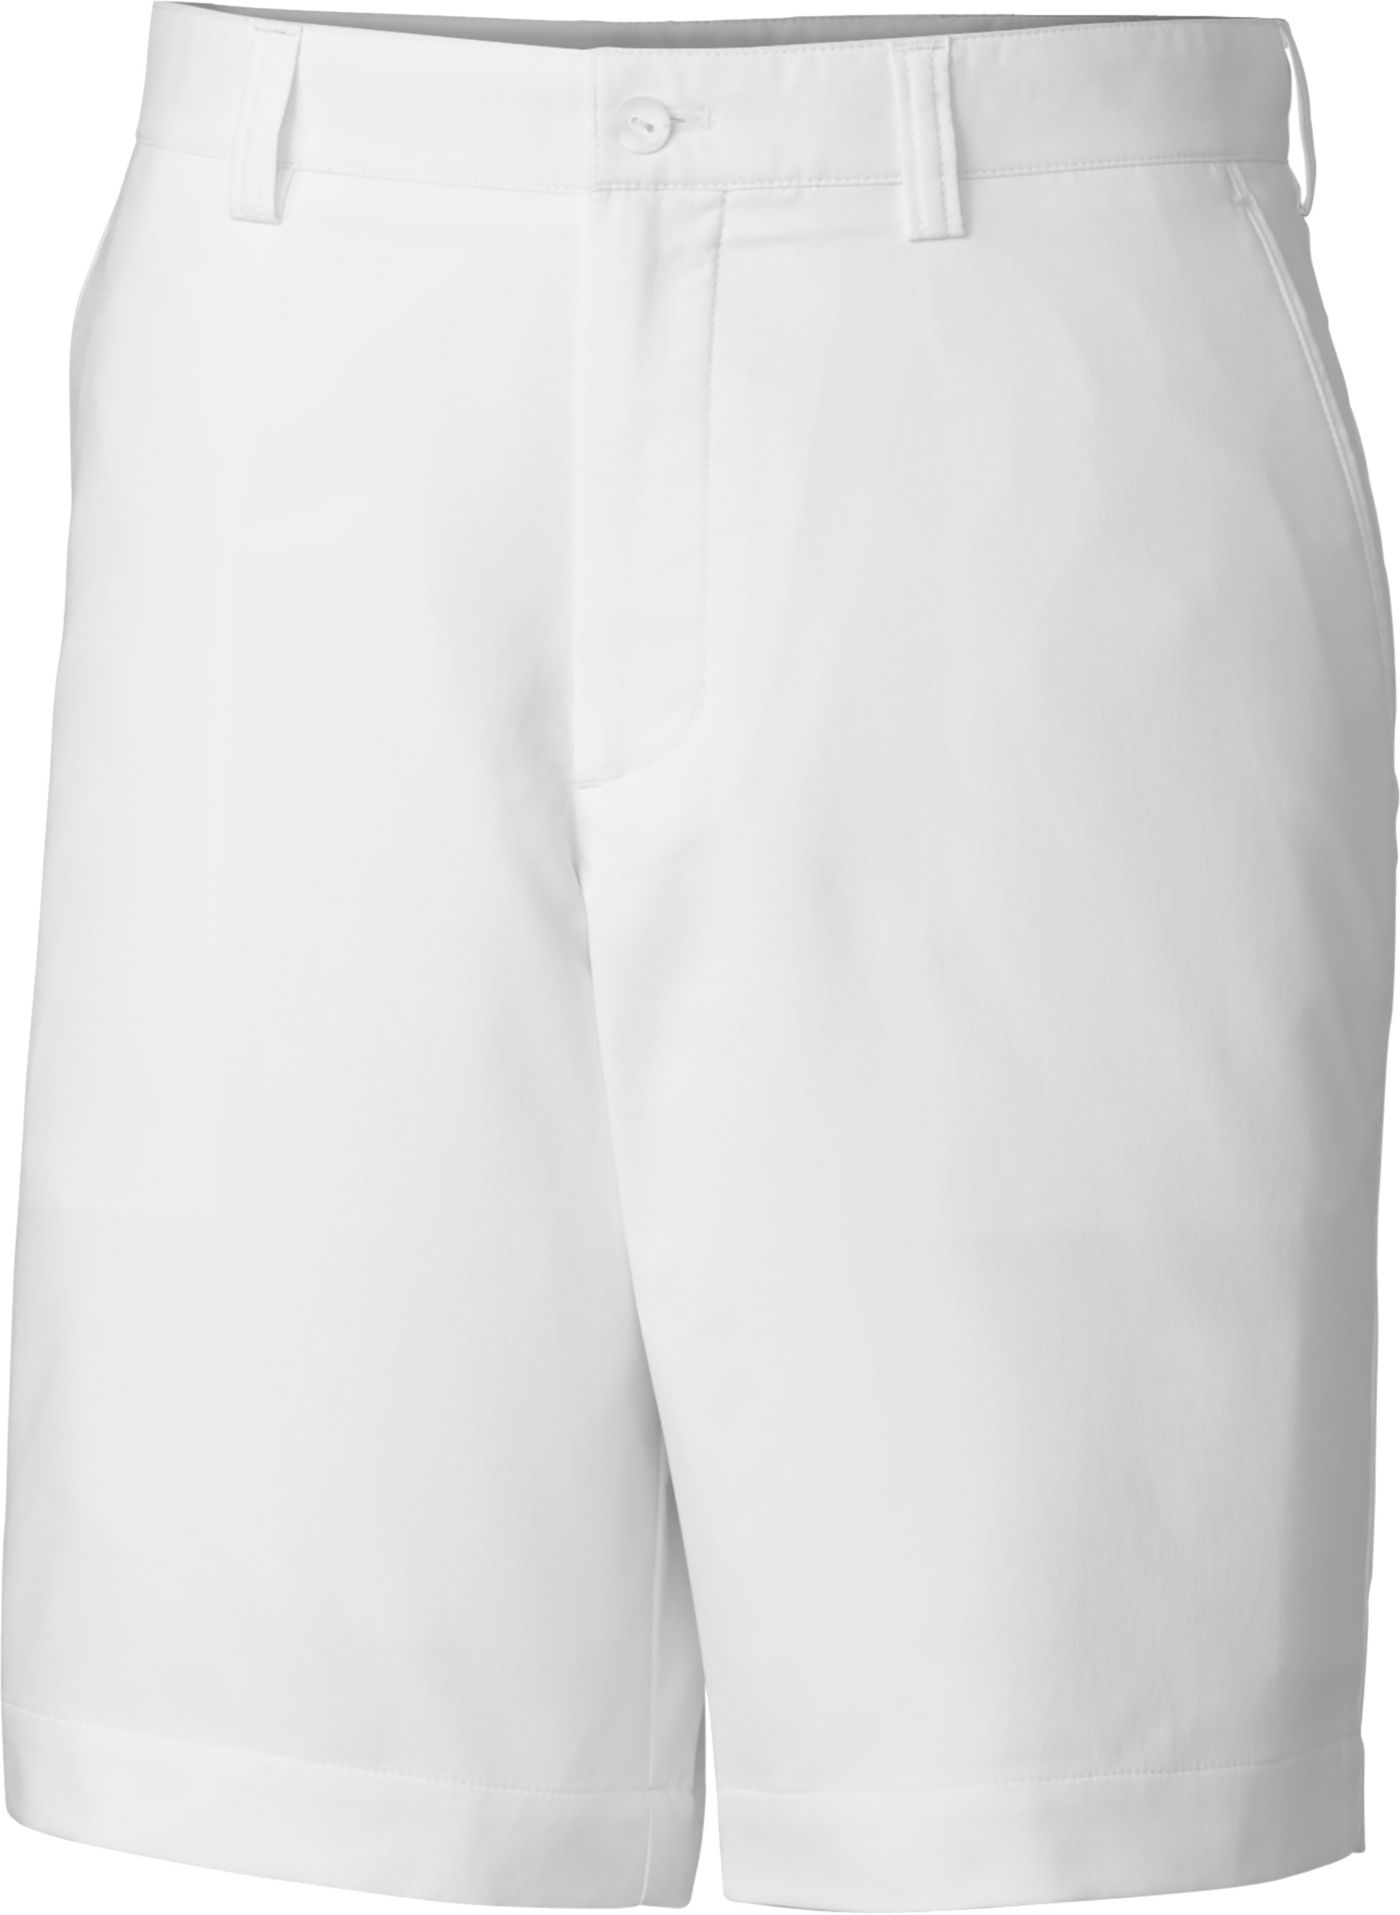 Cutter & Buck Bainbridge Shorts